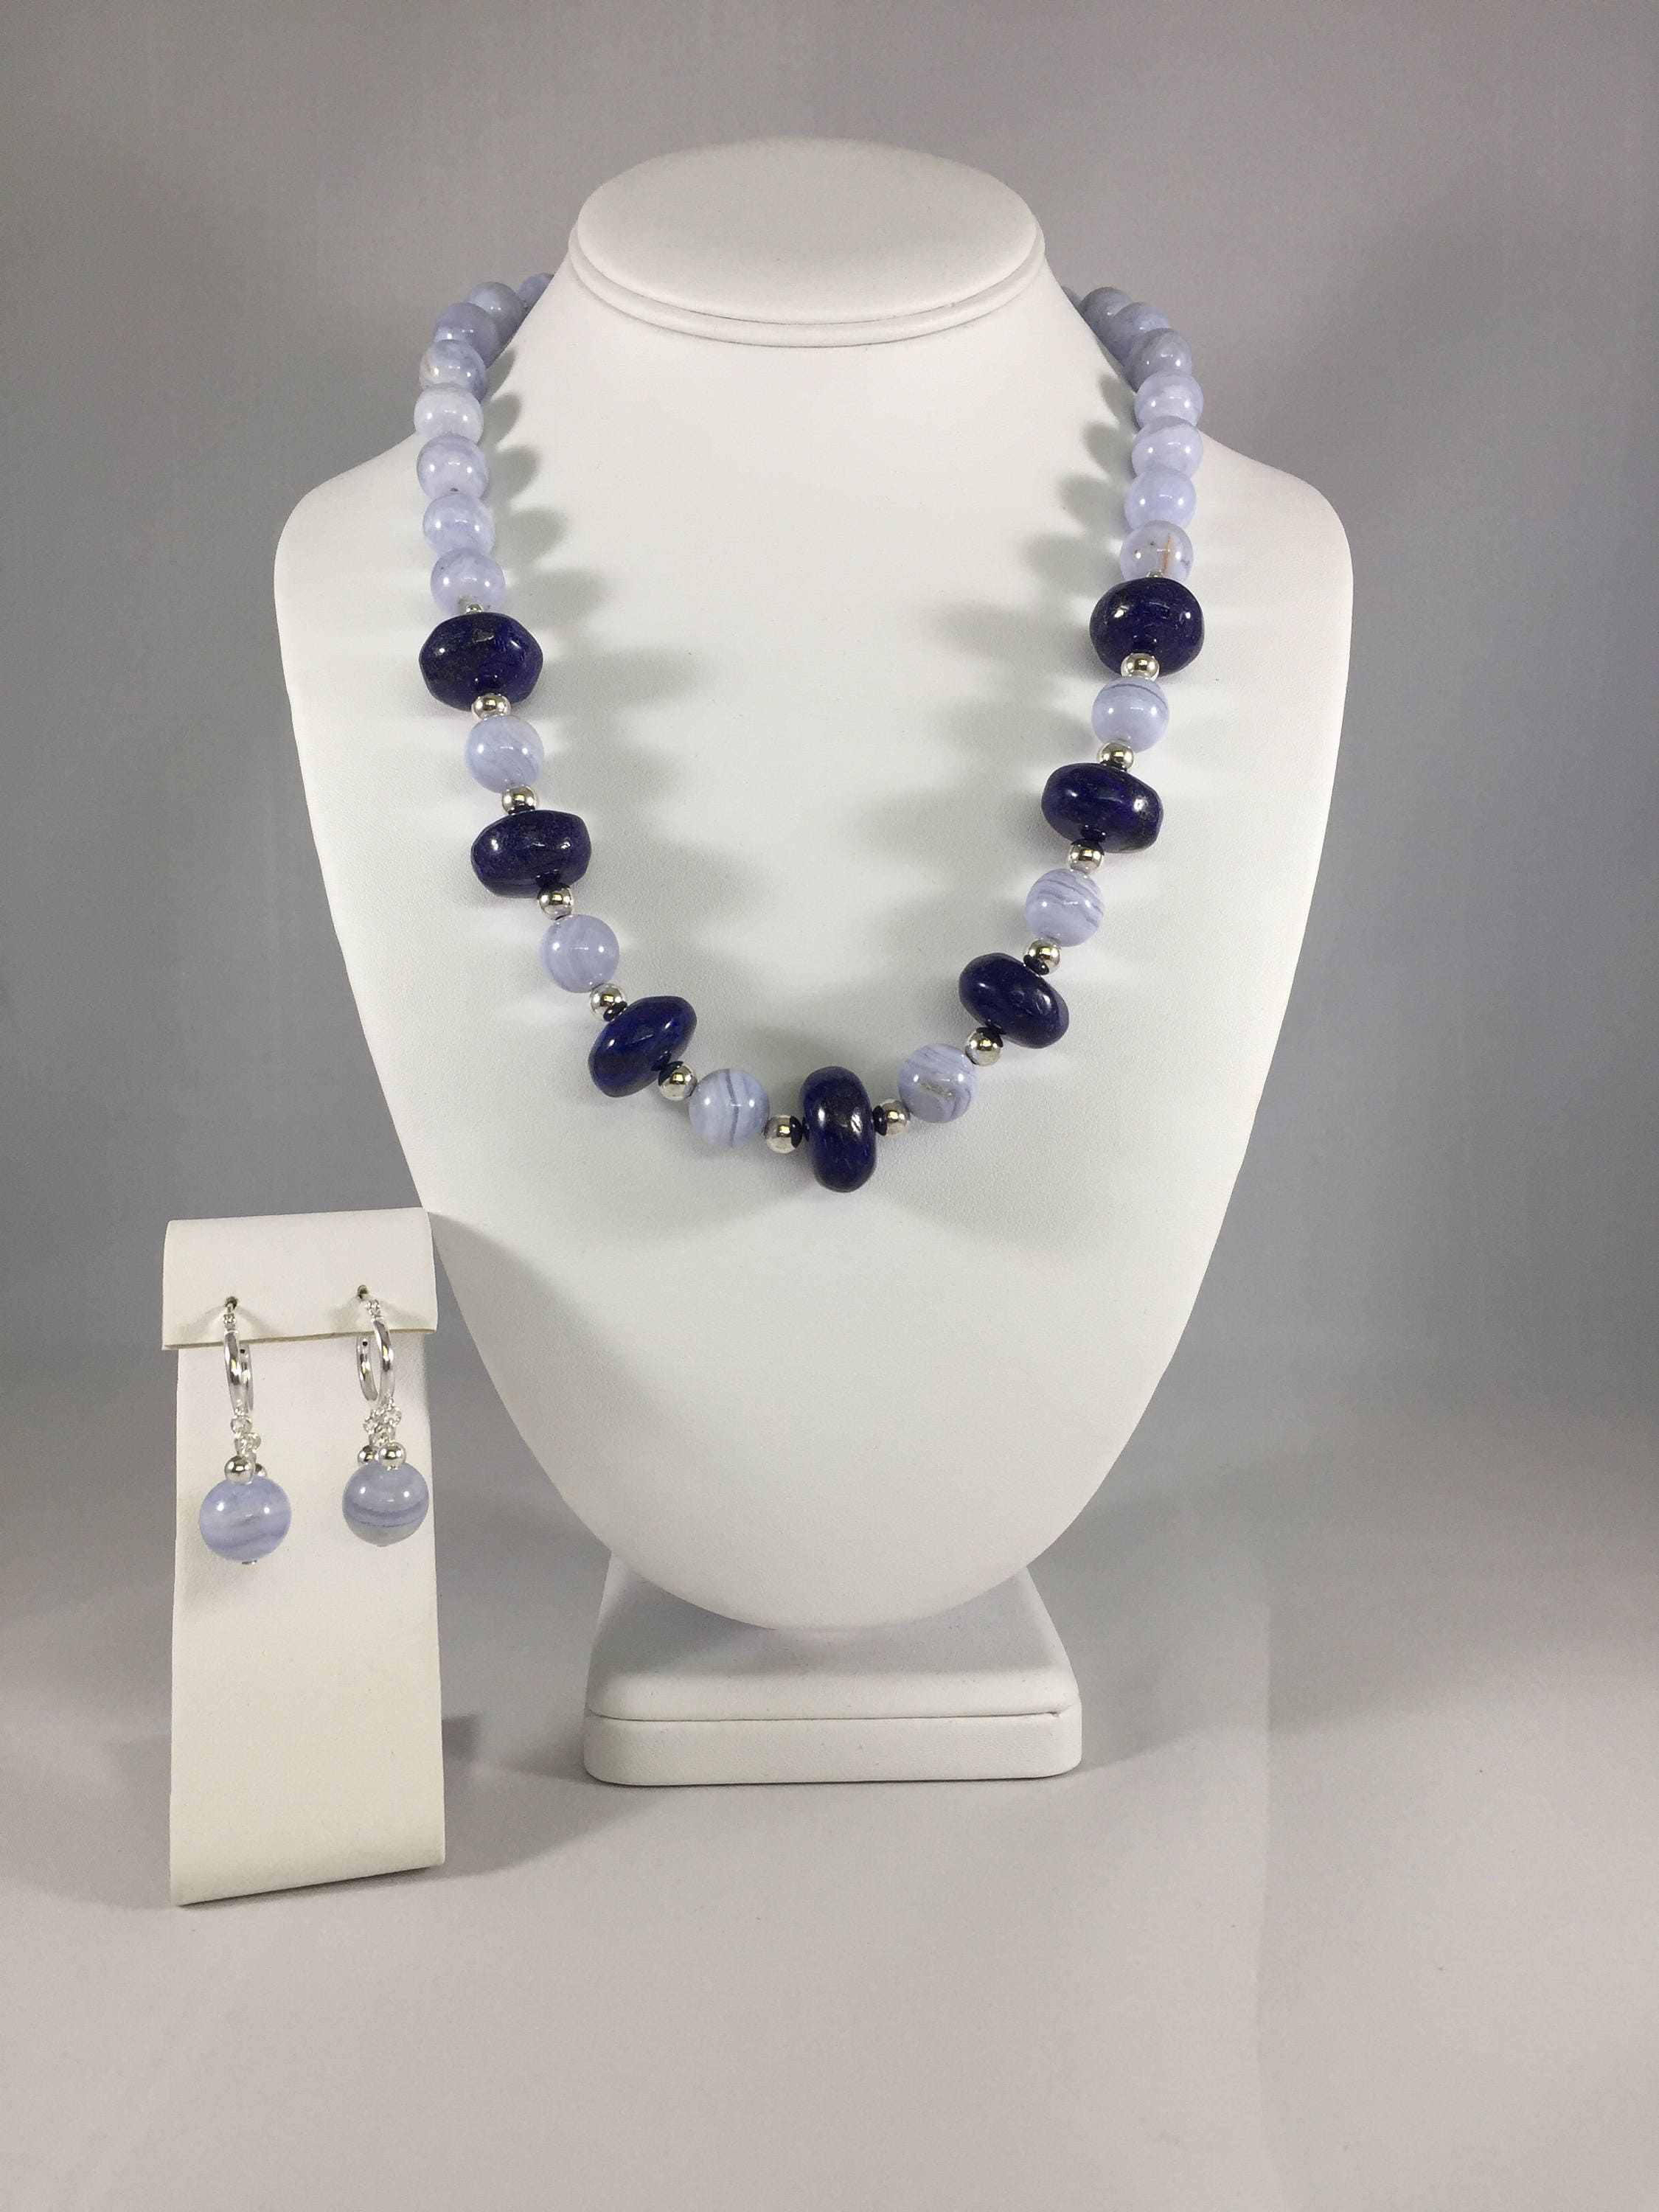 Blue Lace Agate (Natural) and Lapis Lazuli (Natural) Gemstone Necklace and Earrings Set Sterling Silver Earrings.Handmade Necklace For Her